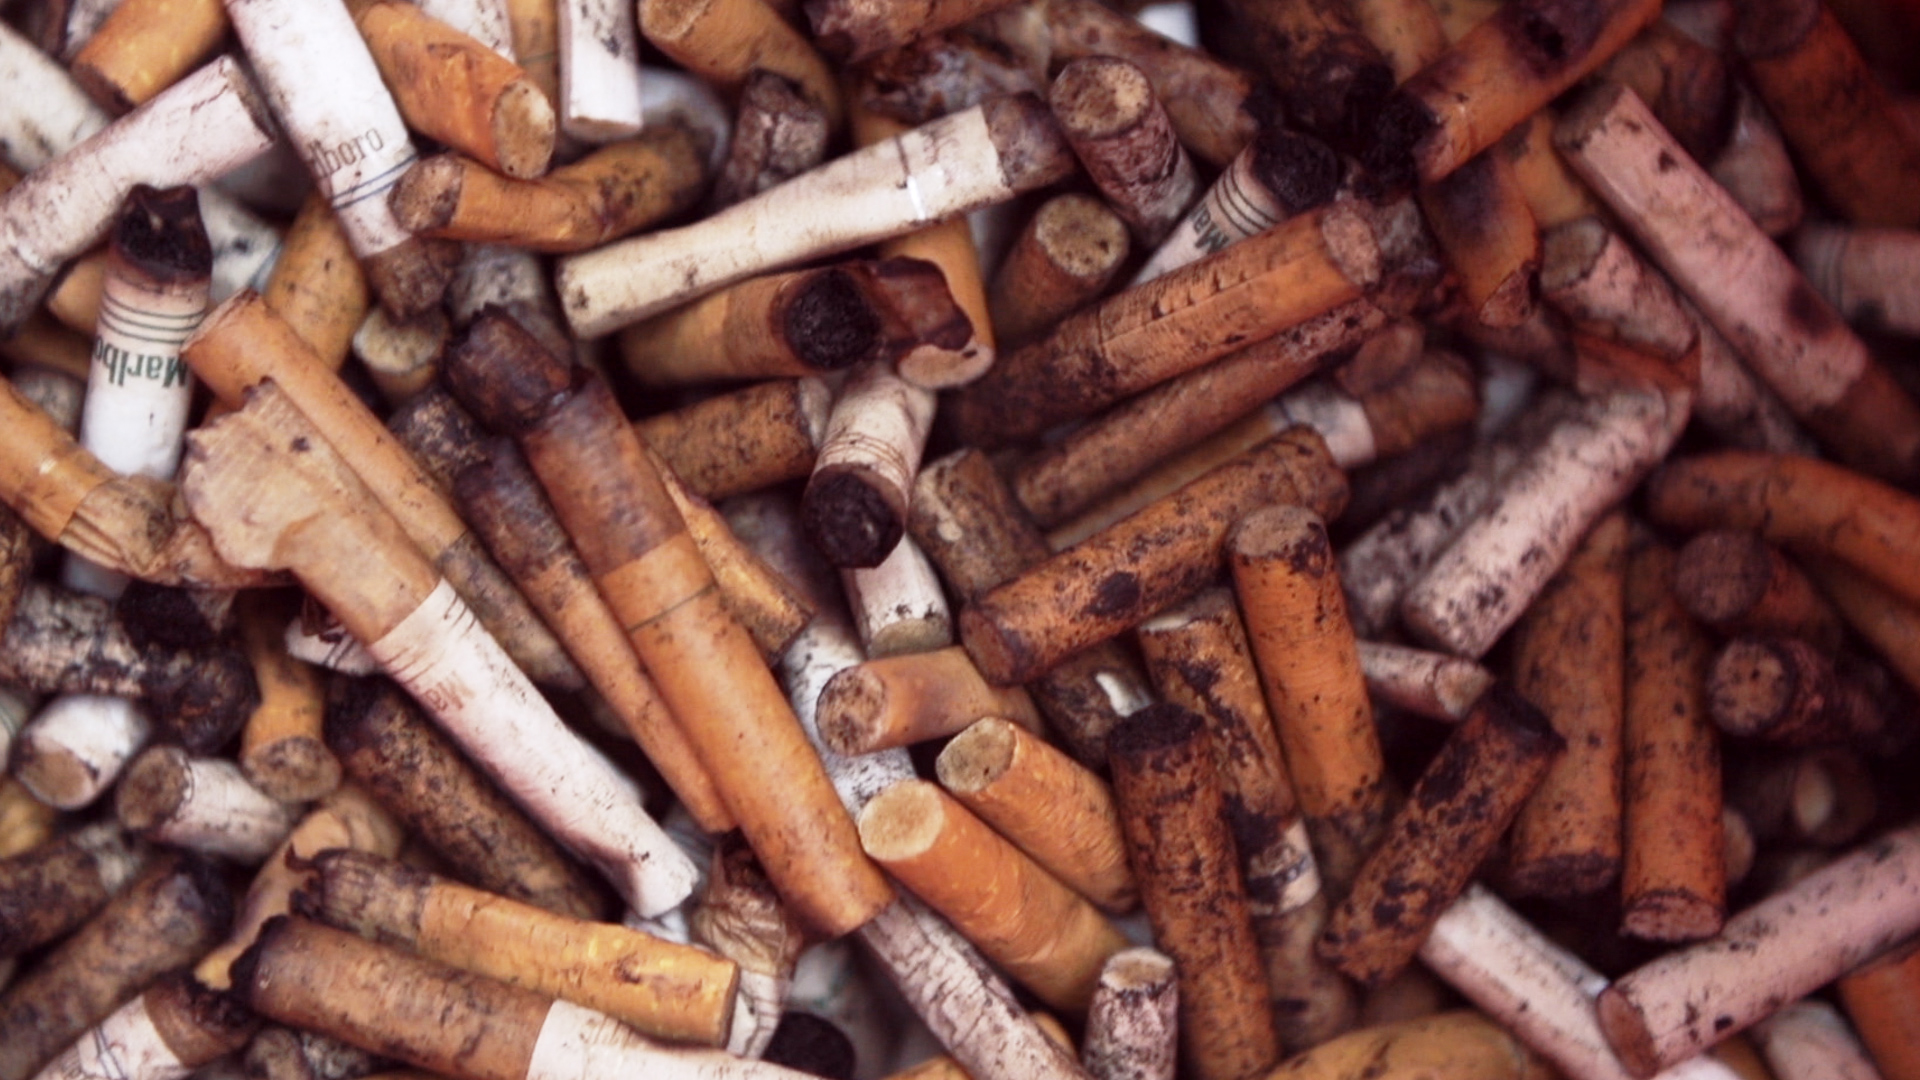 Watch Cigarette Butts World S 1 Litter Recycled As